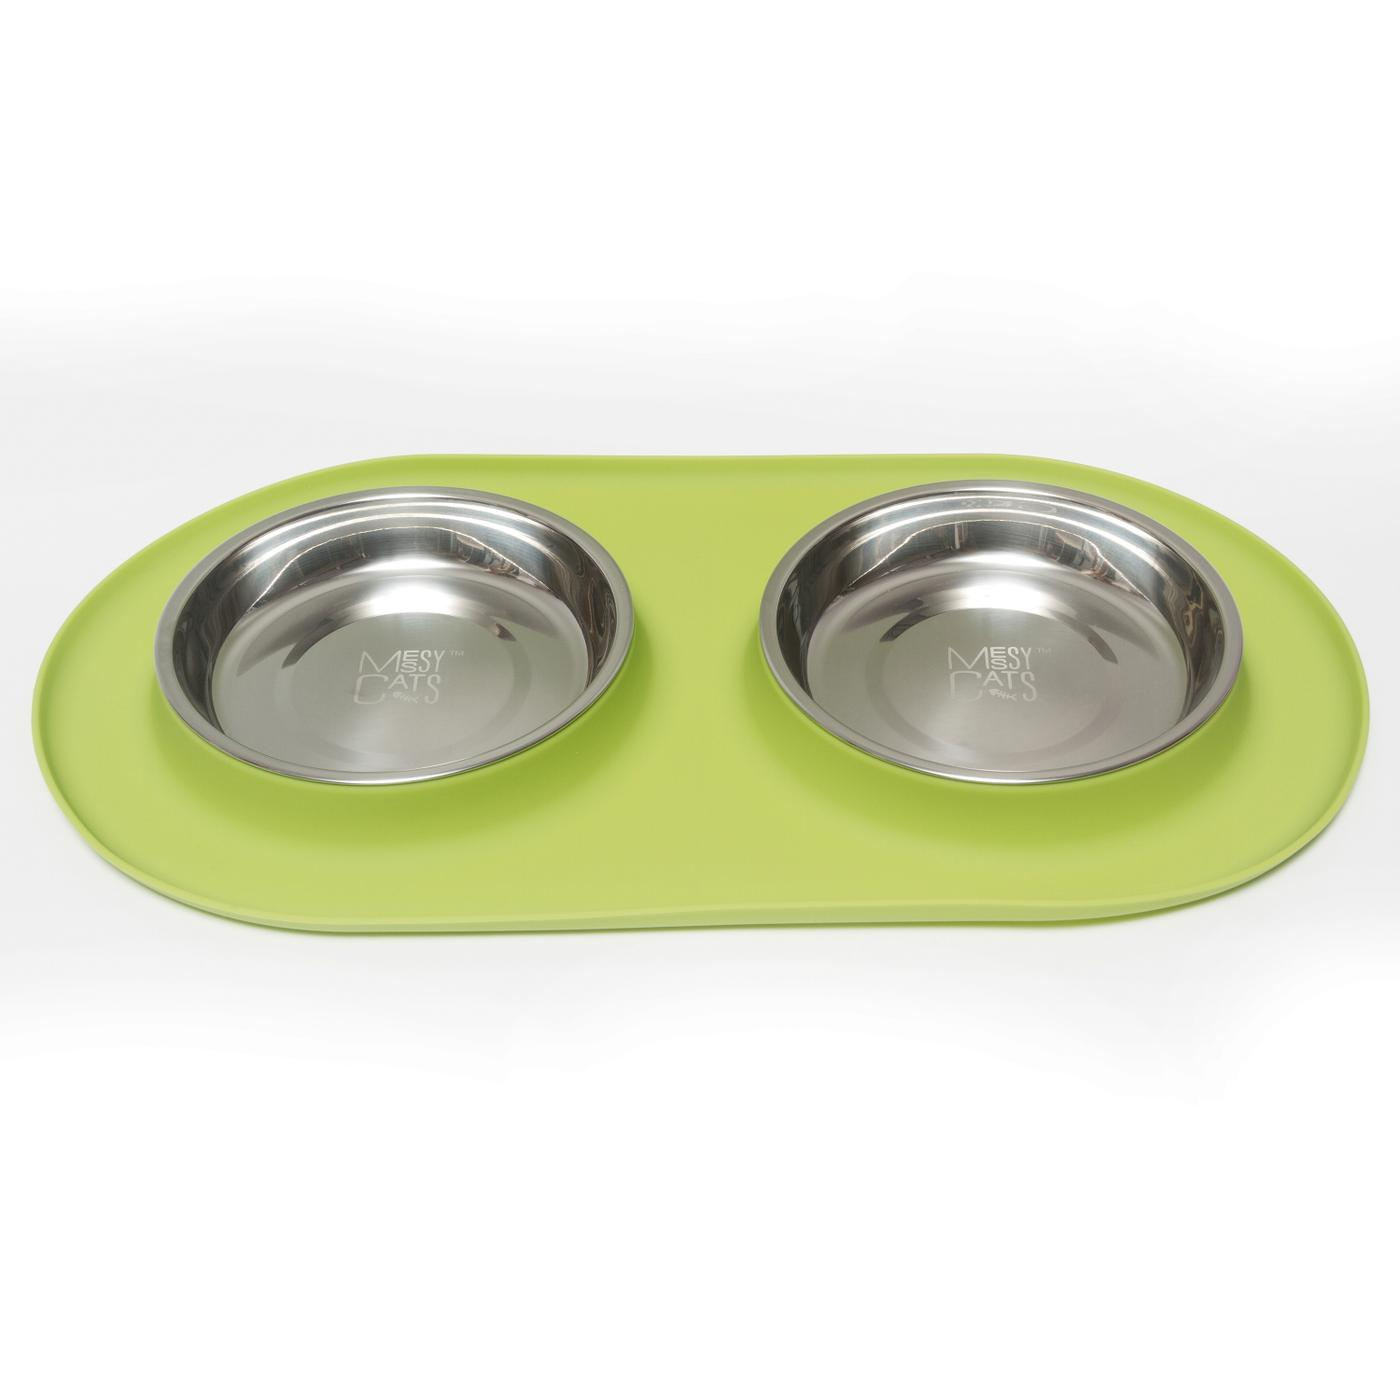 Messy Cats Double Silicone Feeder, Medium, Green